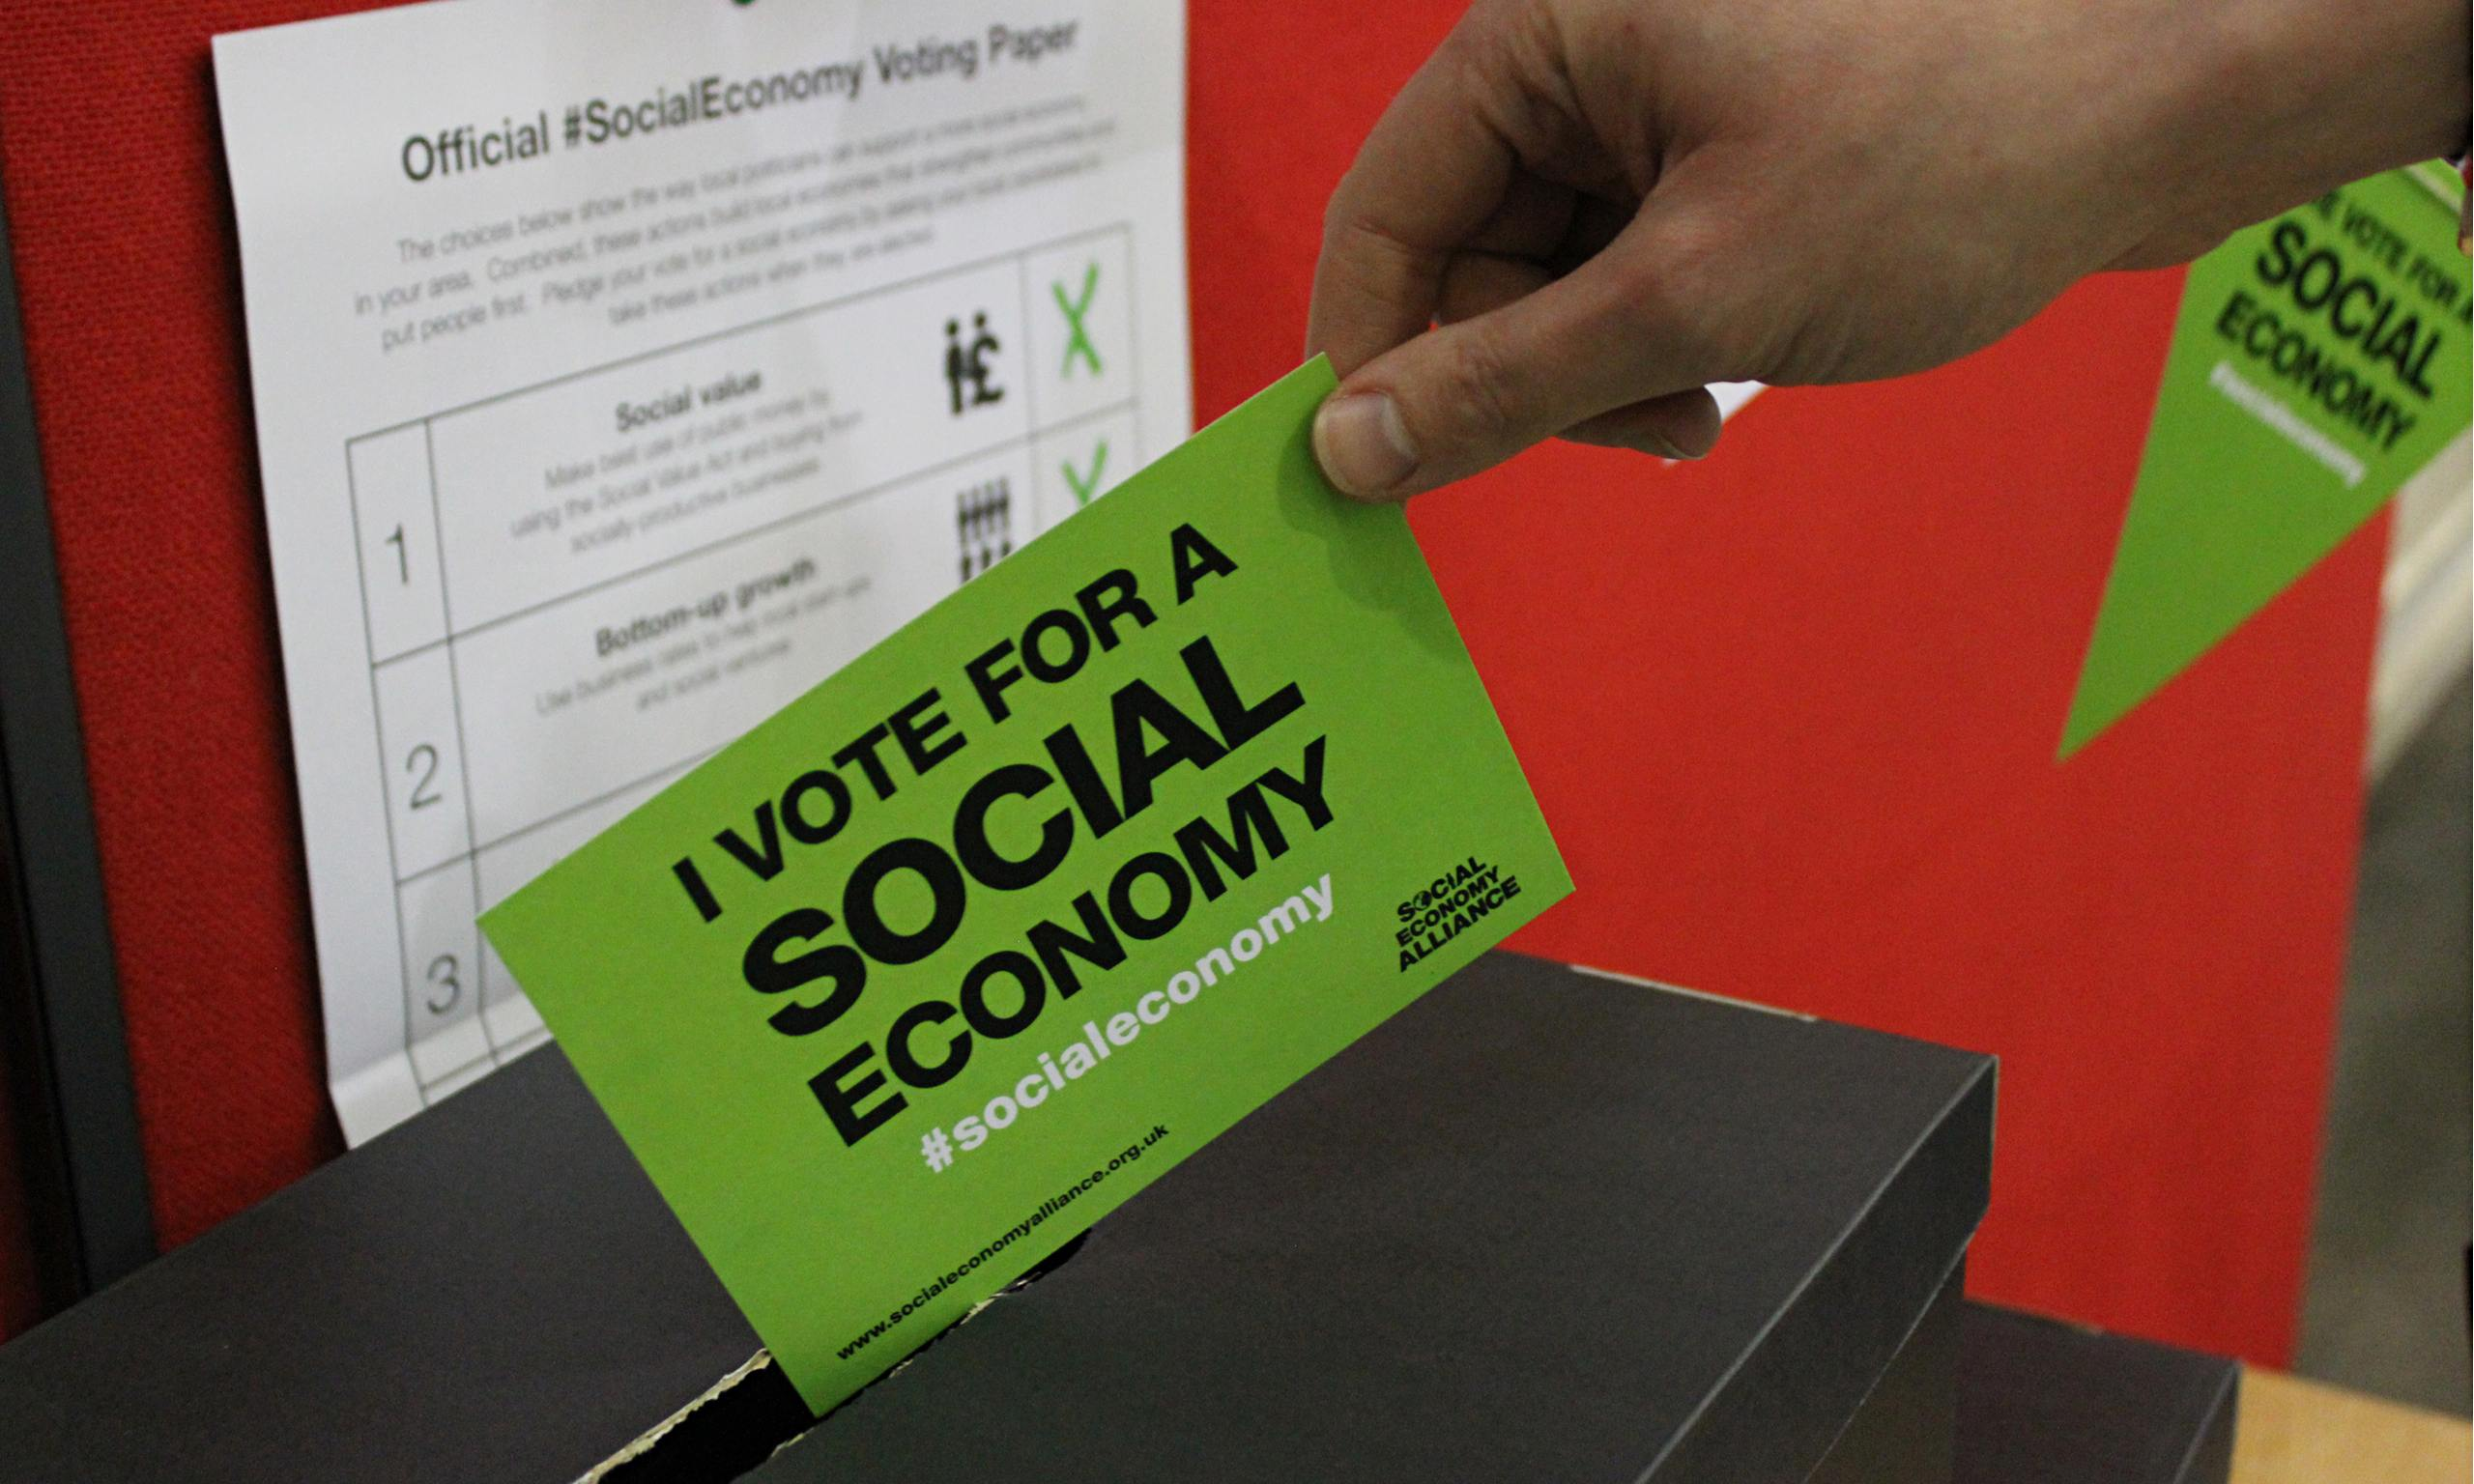 Campaign for a social economy: We have a critical window to influence party manifestos